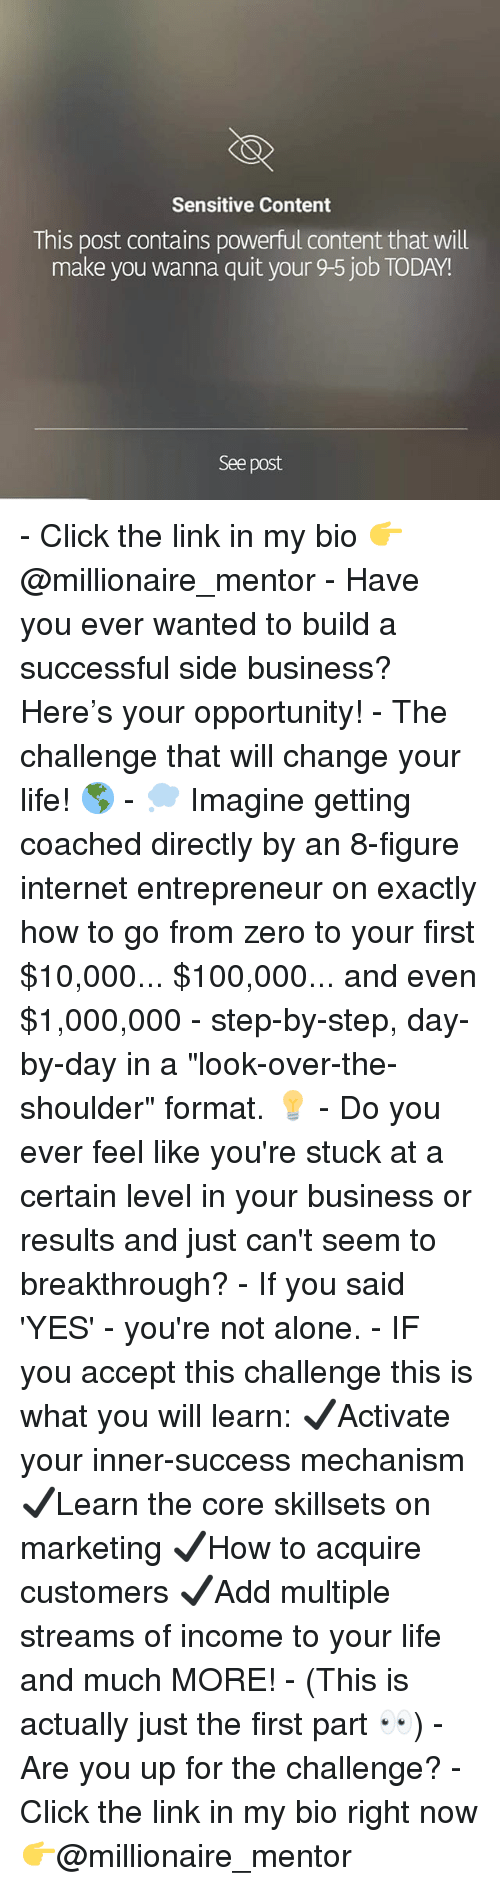 """Being Alone, Anaconda, and Click: Sensitive Content  This post contains powerful content that will  make you wanna quit your 9-5 job TODAY!  See post - Click the link in my bio 👉@millionaire_mentor - Have you ever wanted to build a successful side business? Here's your opportunity! - The challenge that will change your life! 🌎 - 💭 Imagine getting coached directly by an 8-figure internet entrepreneur on exactly how to go from zero to your first $10,000... $100,000... and even $1,000,000 - step-by-step, day-by-day in a """"look-over-the-shoulder"""" format. 💡 - Do you ever feel like you're stuck at a certain level in your business or results and just can't seem to breakthrough? - If you said 'YES' - you're not alone. - IF you accept this challenge this is what you will learn: ✔️Activate your inner-success mechanism ✔️Learn the core skillsets on marketing ✔️How to acquire customers ✔️Add multiple streams of income to your life and much MORE! - (This is actually just the first part 👀) - Are you up for the challenge? - Click the link in my bio right now 👉@millionaire_mentor"""